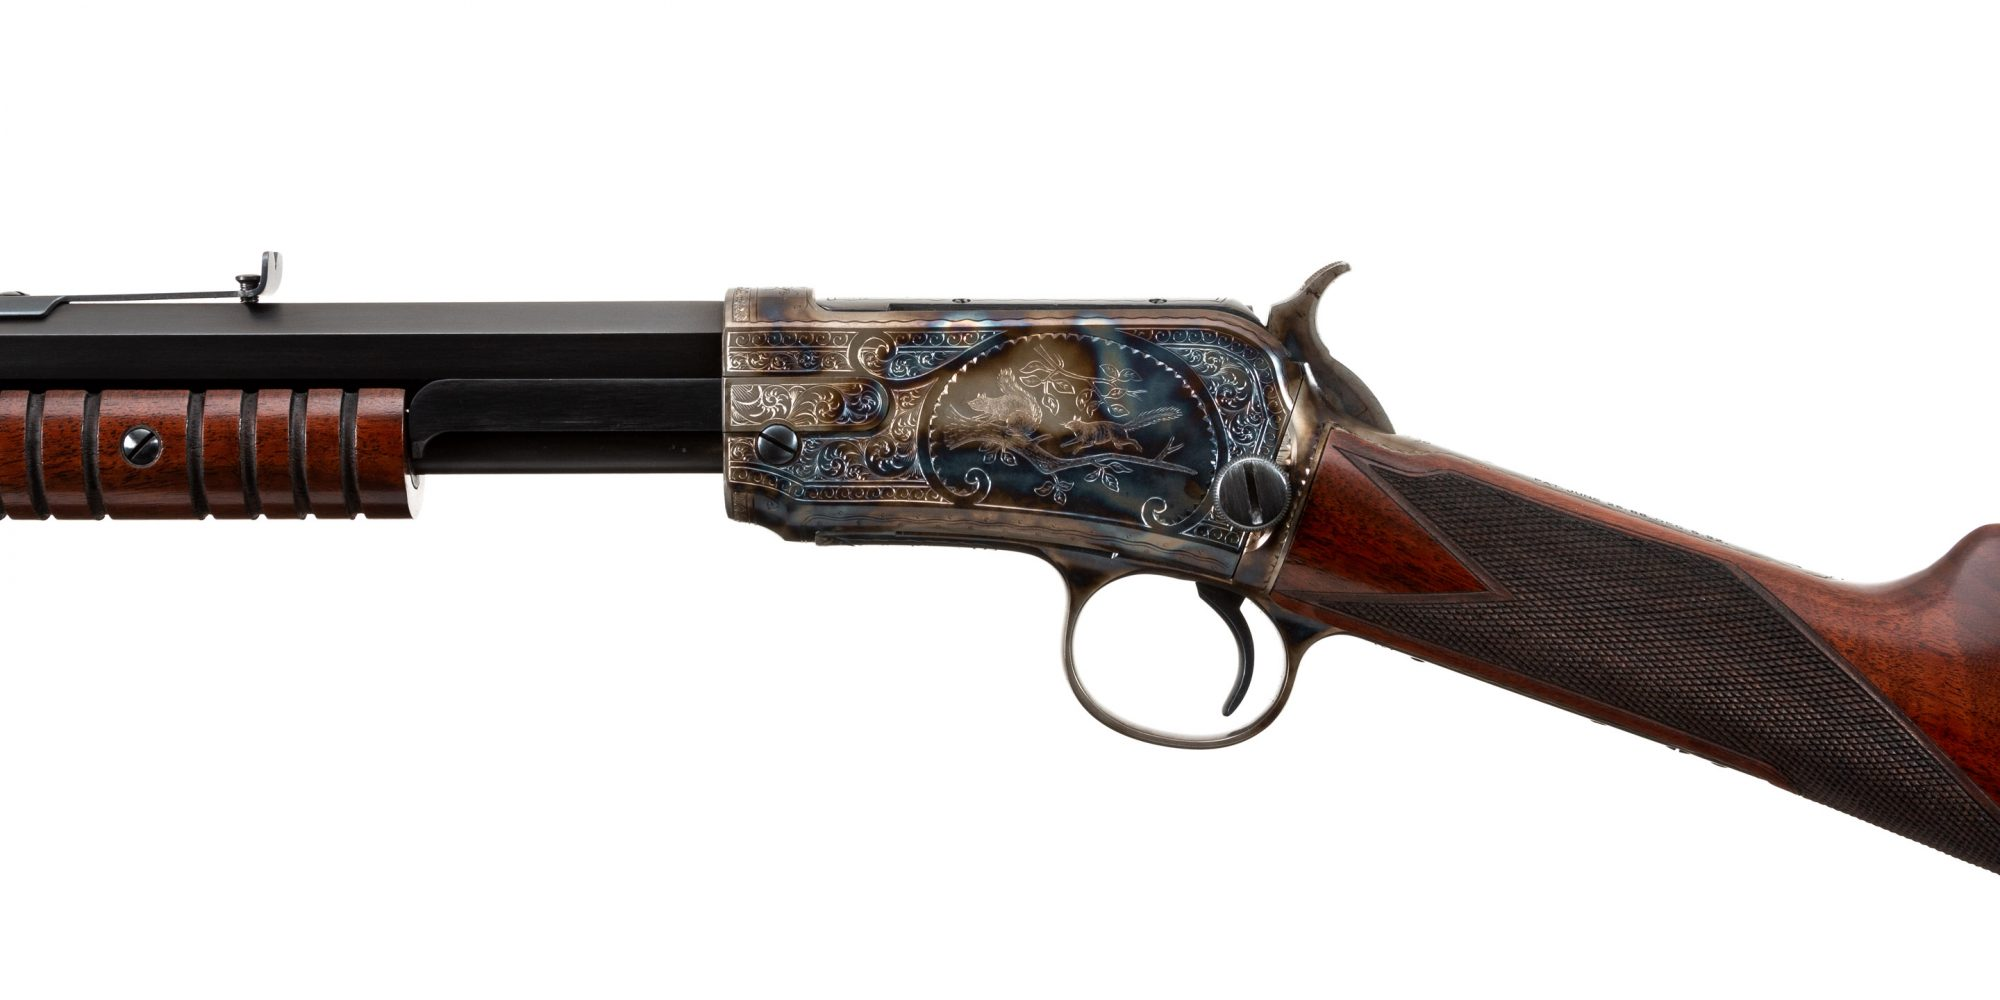 Photo of a restored and upgraded Winchester Model 1890, by Turnbull Restoration of Bloomfield, NY